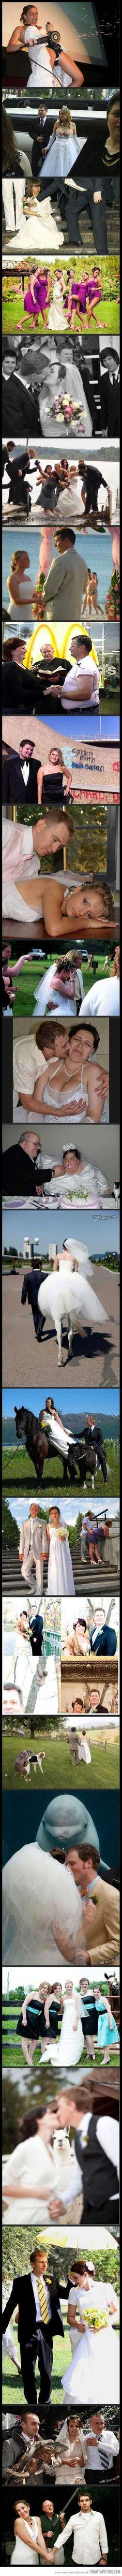 Awkward Wedding Pictures… hahahahah: Awkward Wedding, Giggle, Wedding Photos, Funny Wedding, Wedding Pictures, So Funny